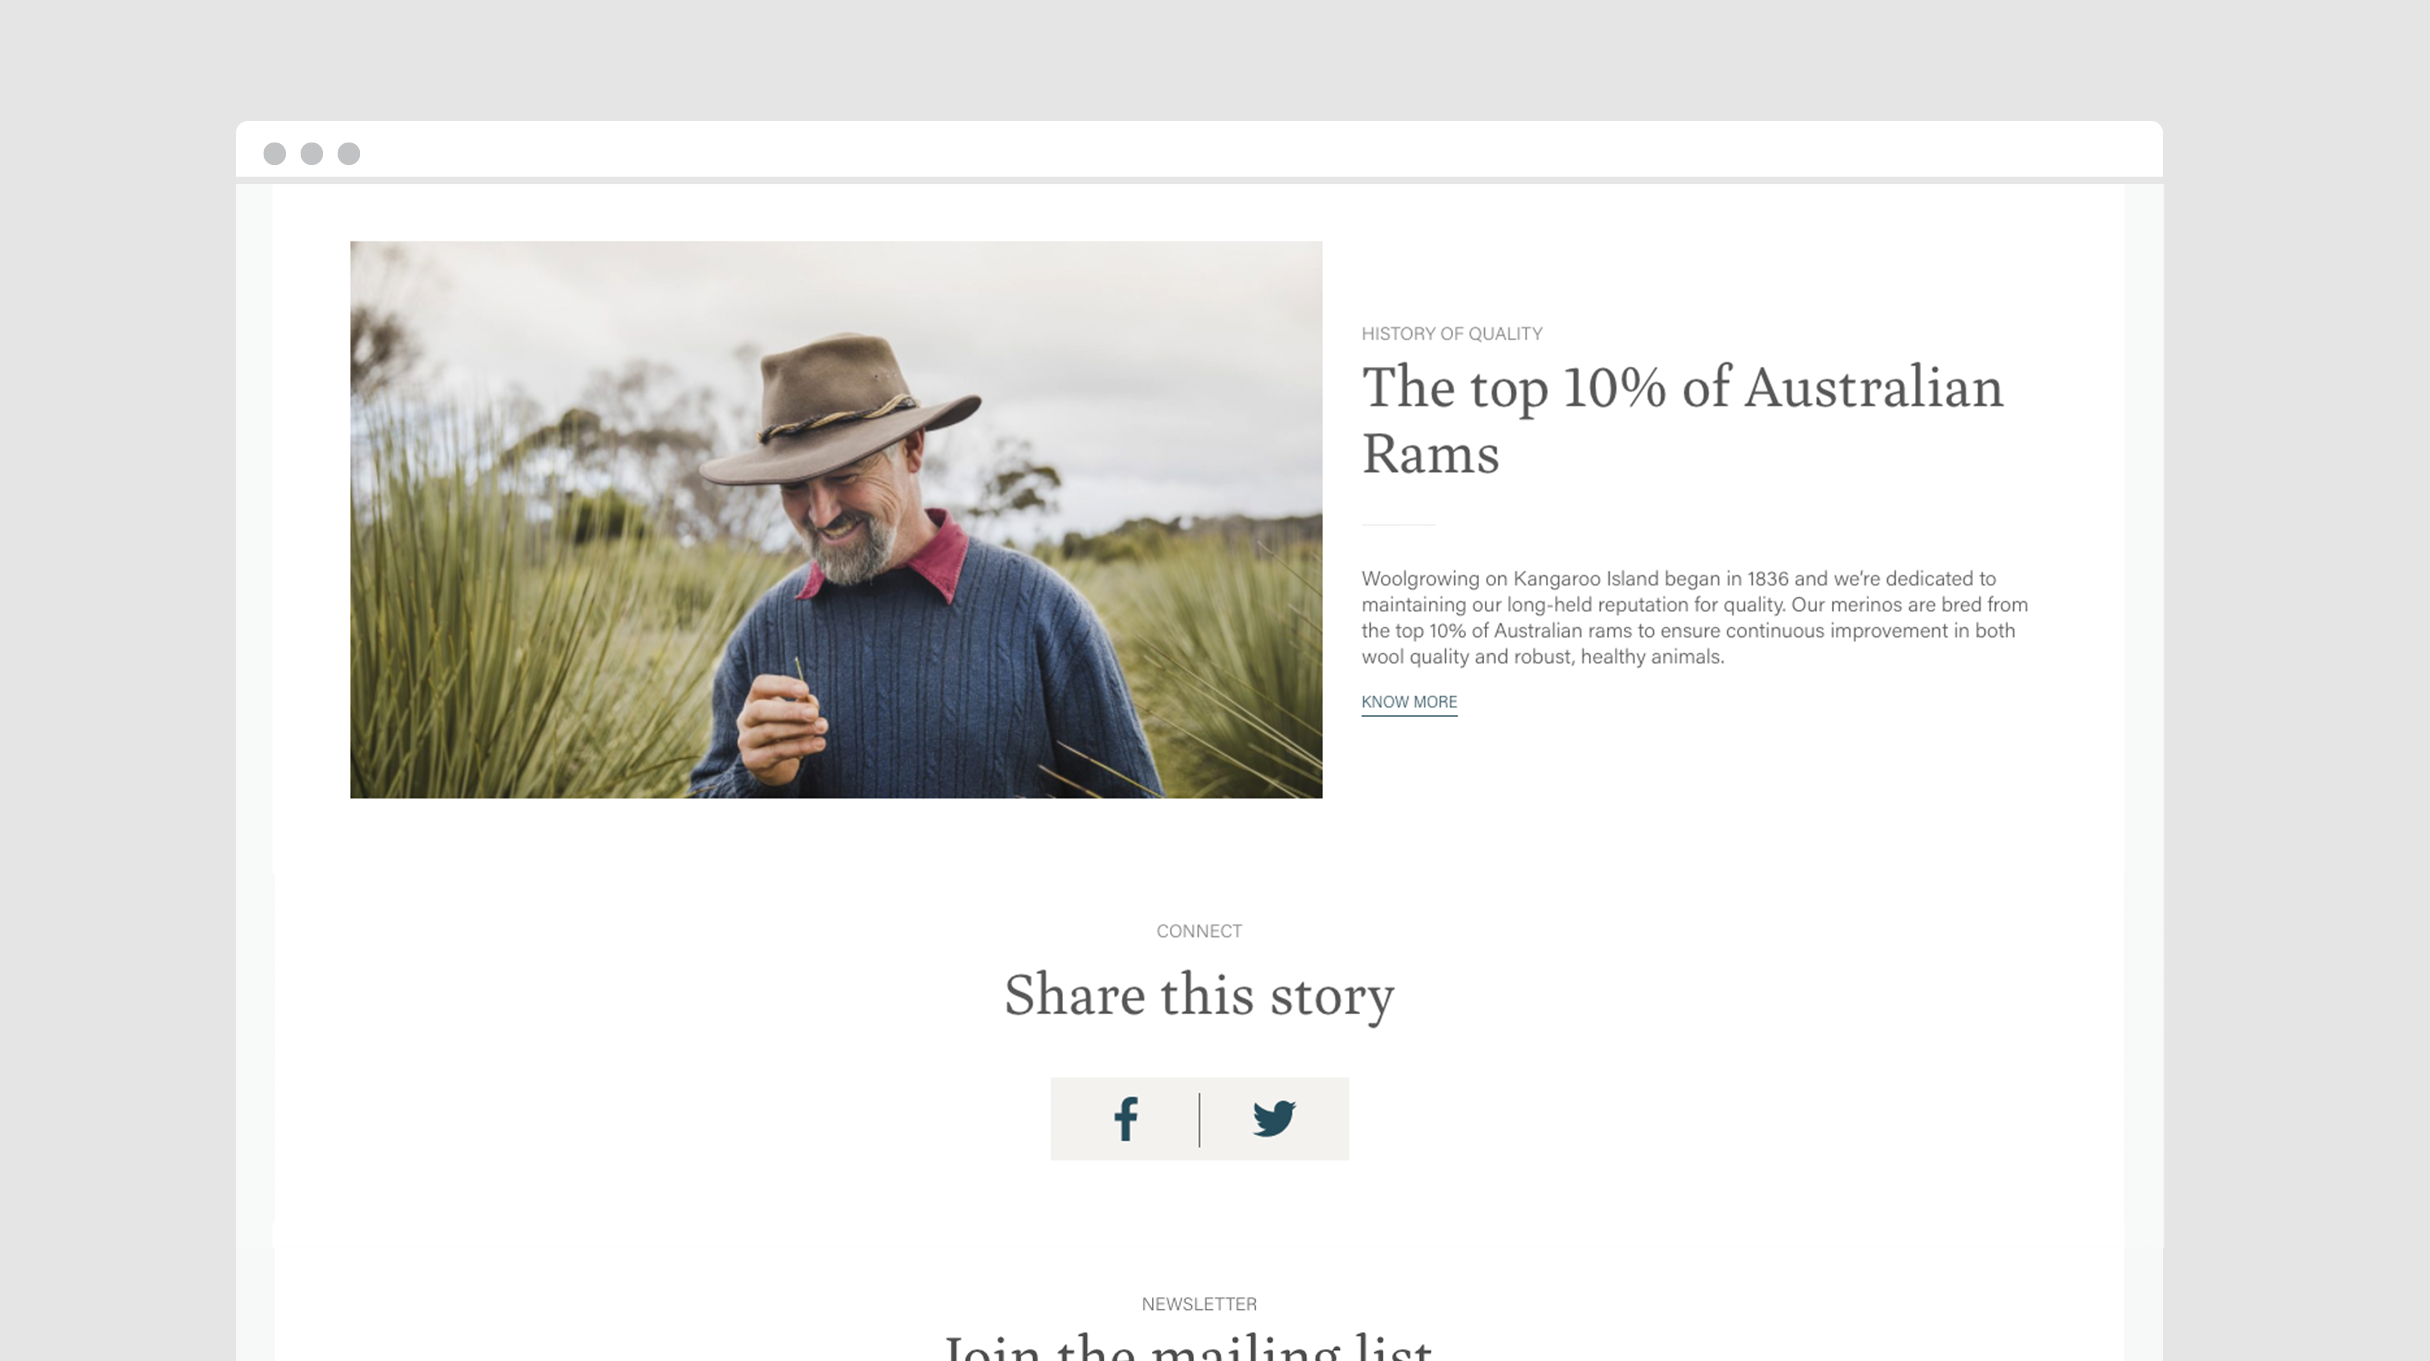 Kangaroo Island Wool website - 'The top 10% of Australia Rams', image of a middle-aged man in a woollen jumper looking down and smiling.